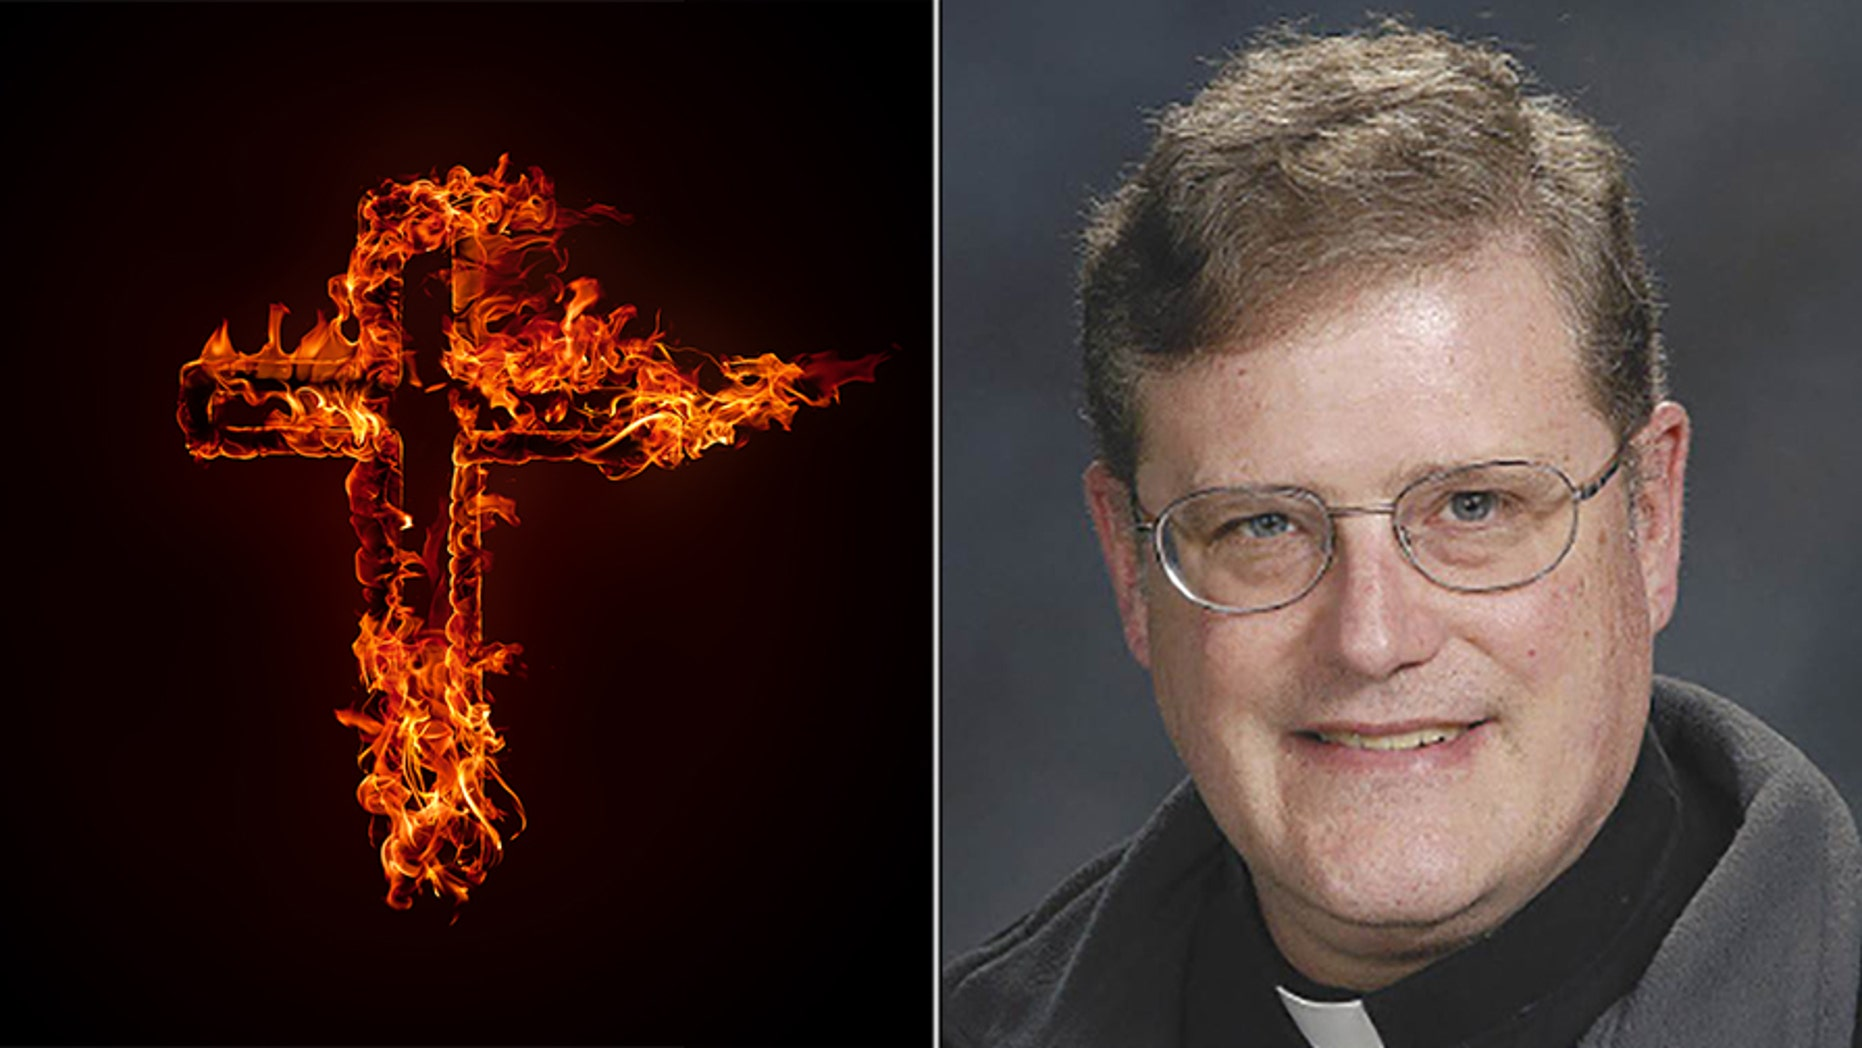 The Rev. William Aitcheson, a priest in the Roman Catholic Diocese of Arlington, Virginia. Catholic Diocese of Arlington